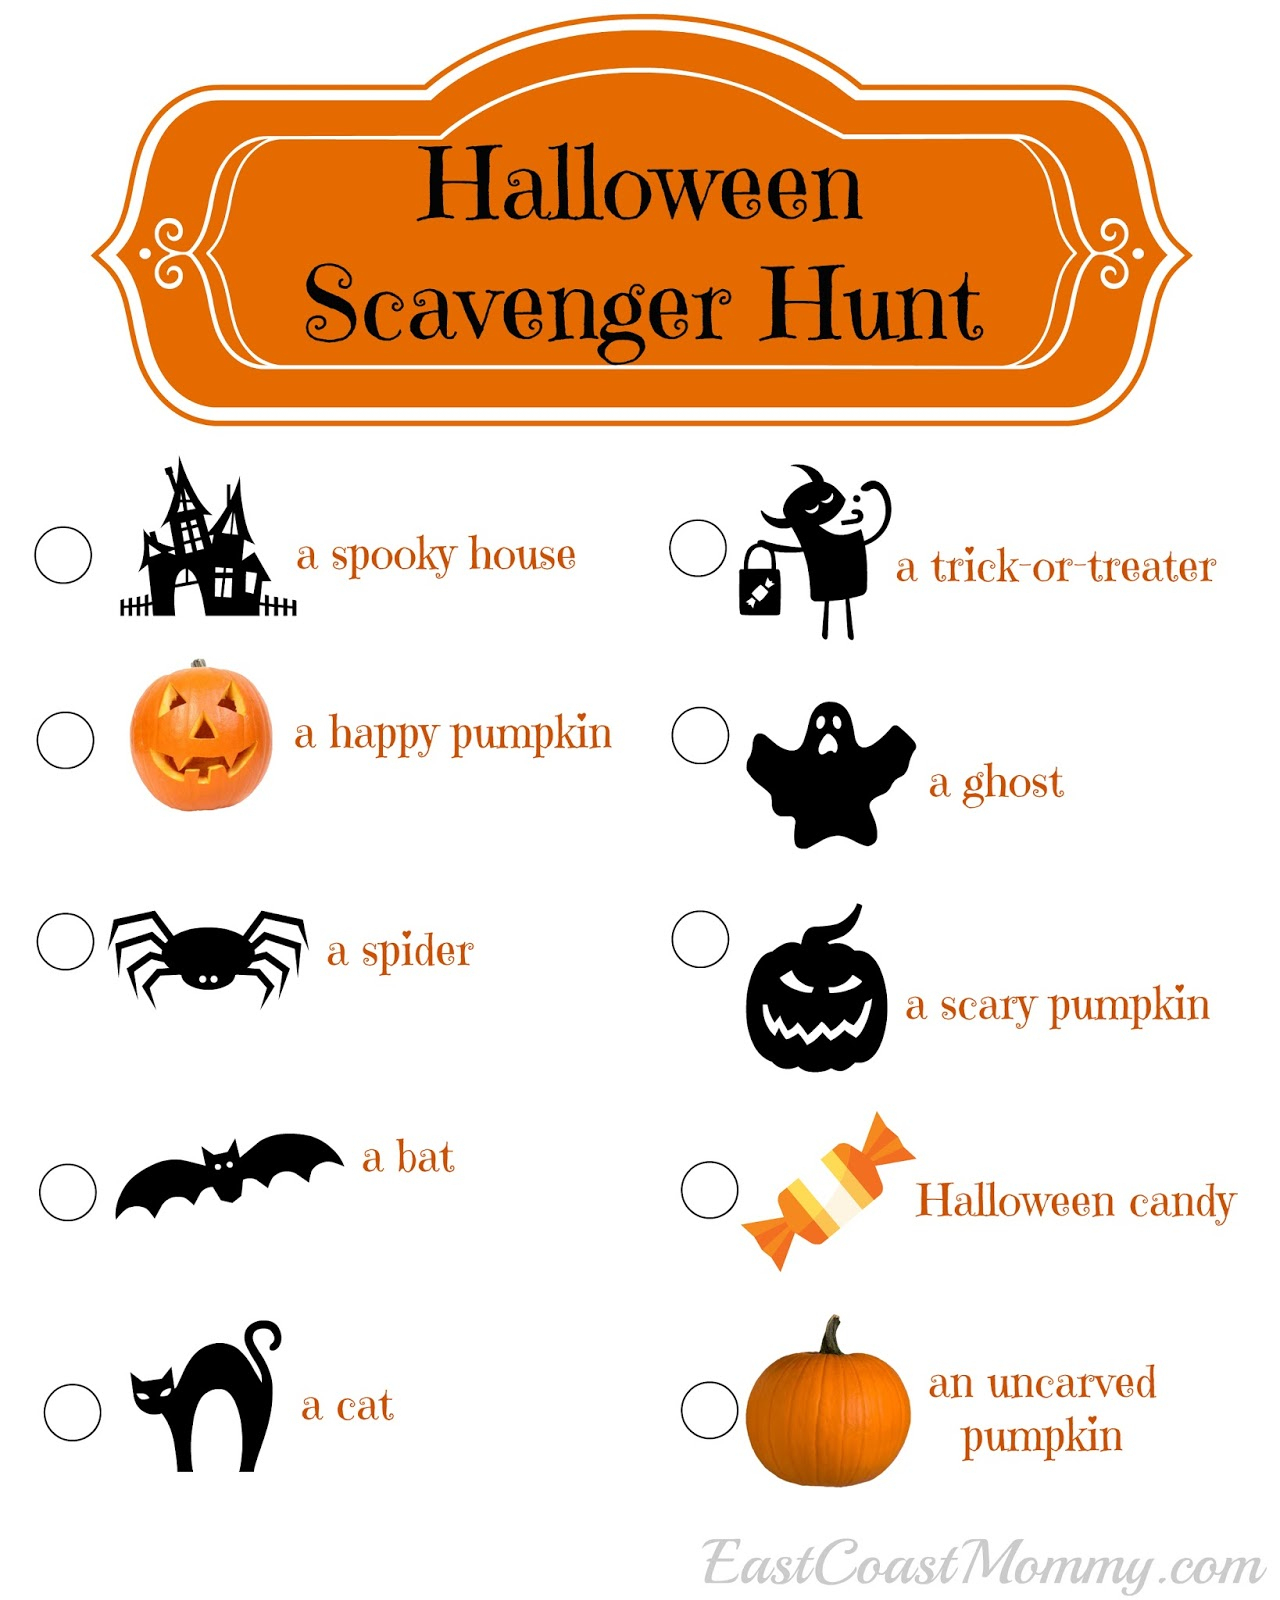 East Coast Mommy: Halloween Scavenger Hunt (With Free Printable) - Free Printable Halloween Scavenger Hunt